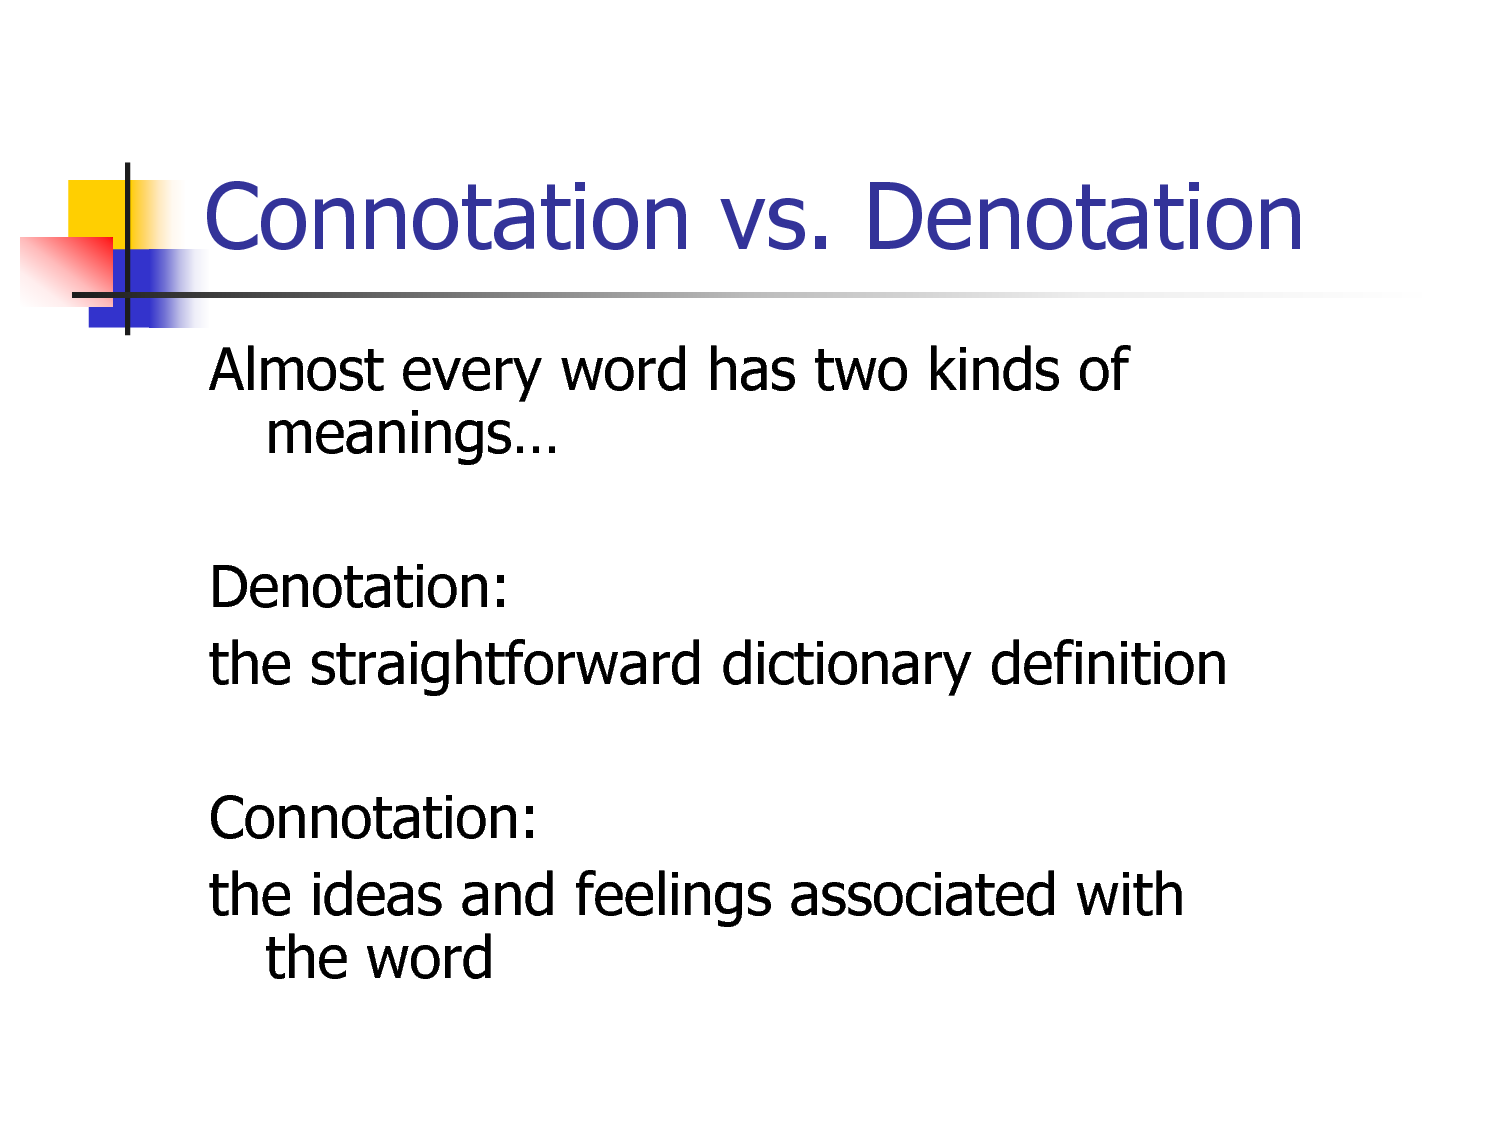 denotative connotative essay Understanding denotation and connotation language is symbolic in that we use it to represent ideas, objects, and feelings because language is only representative.